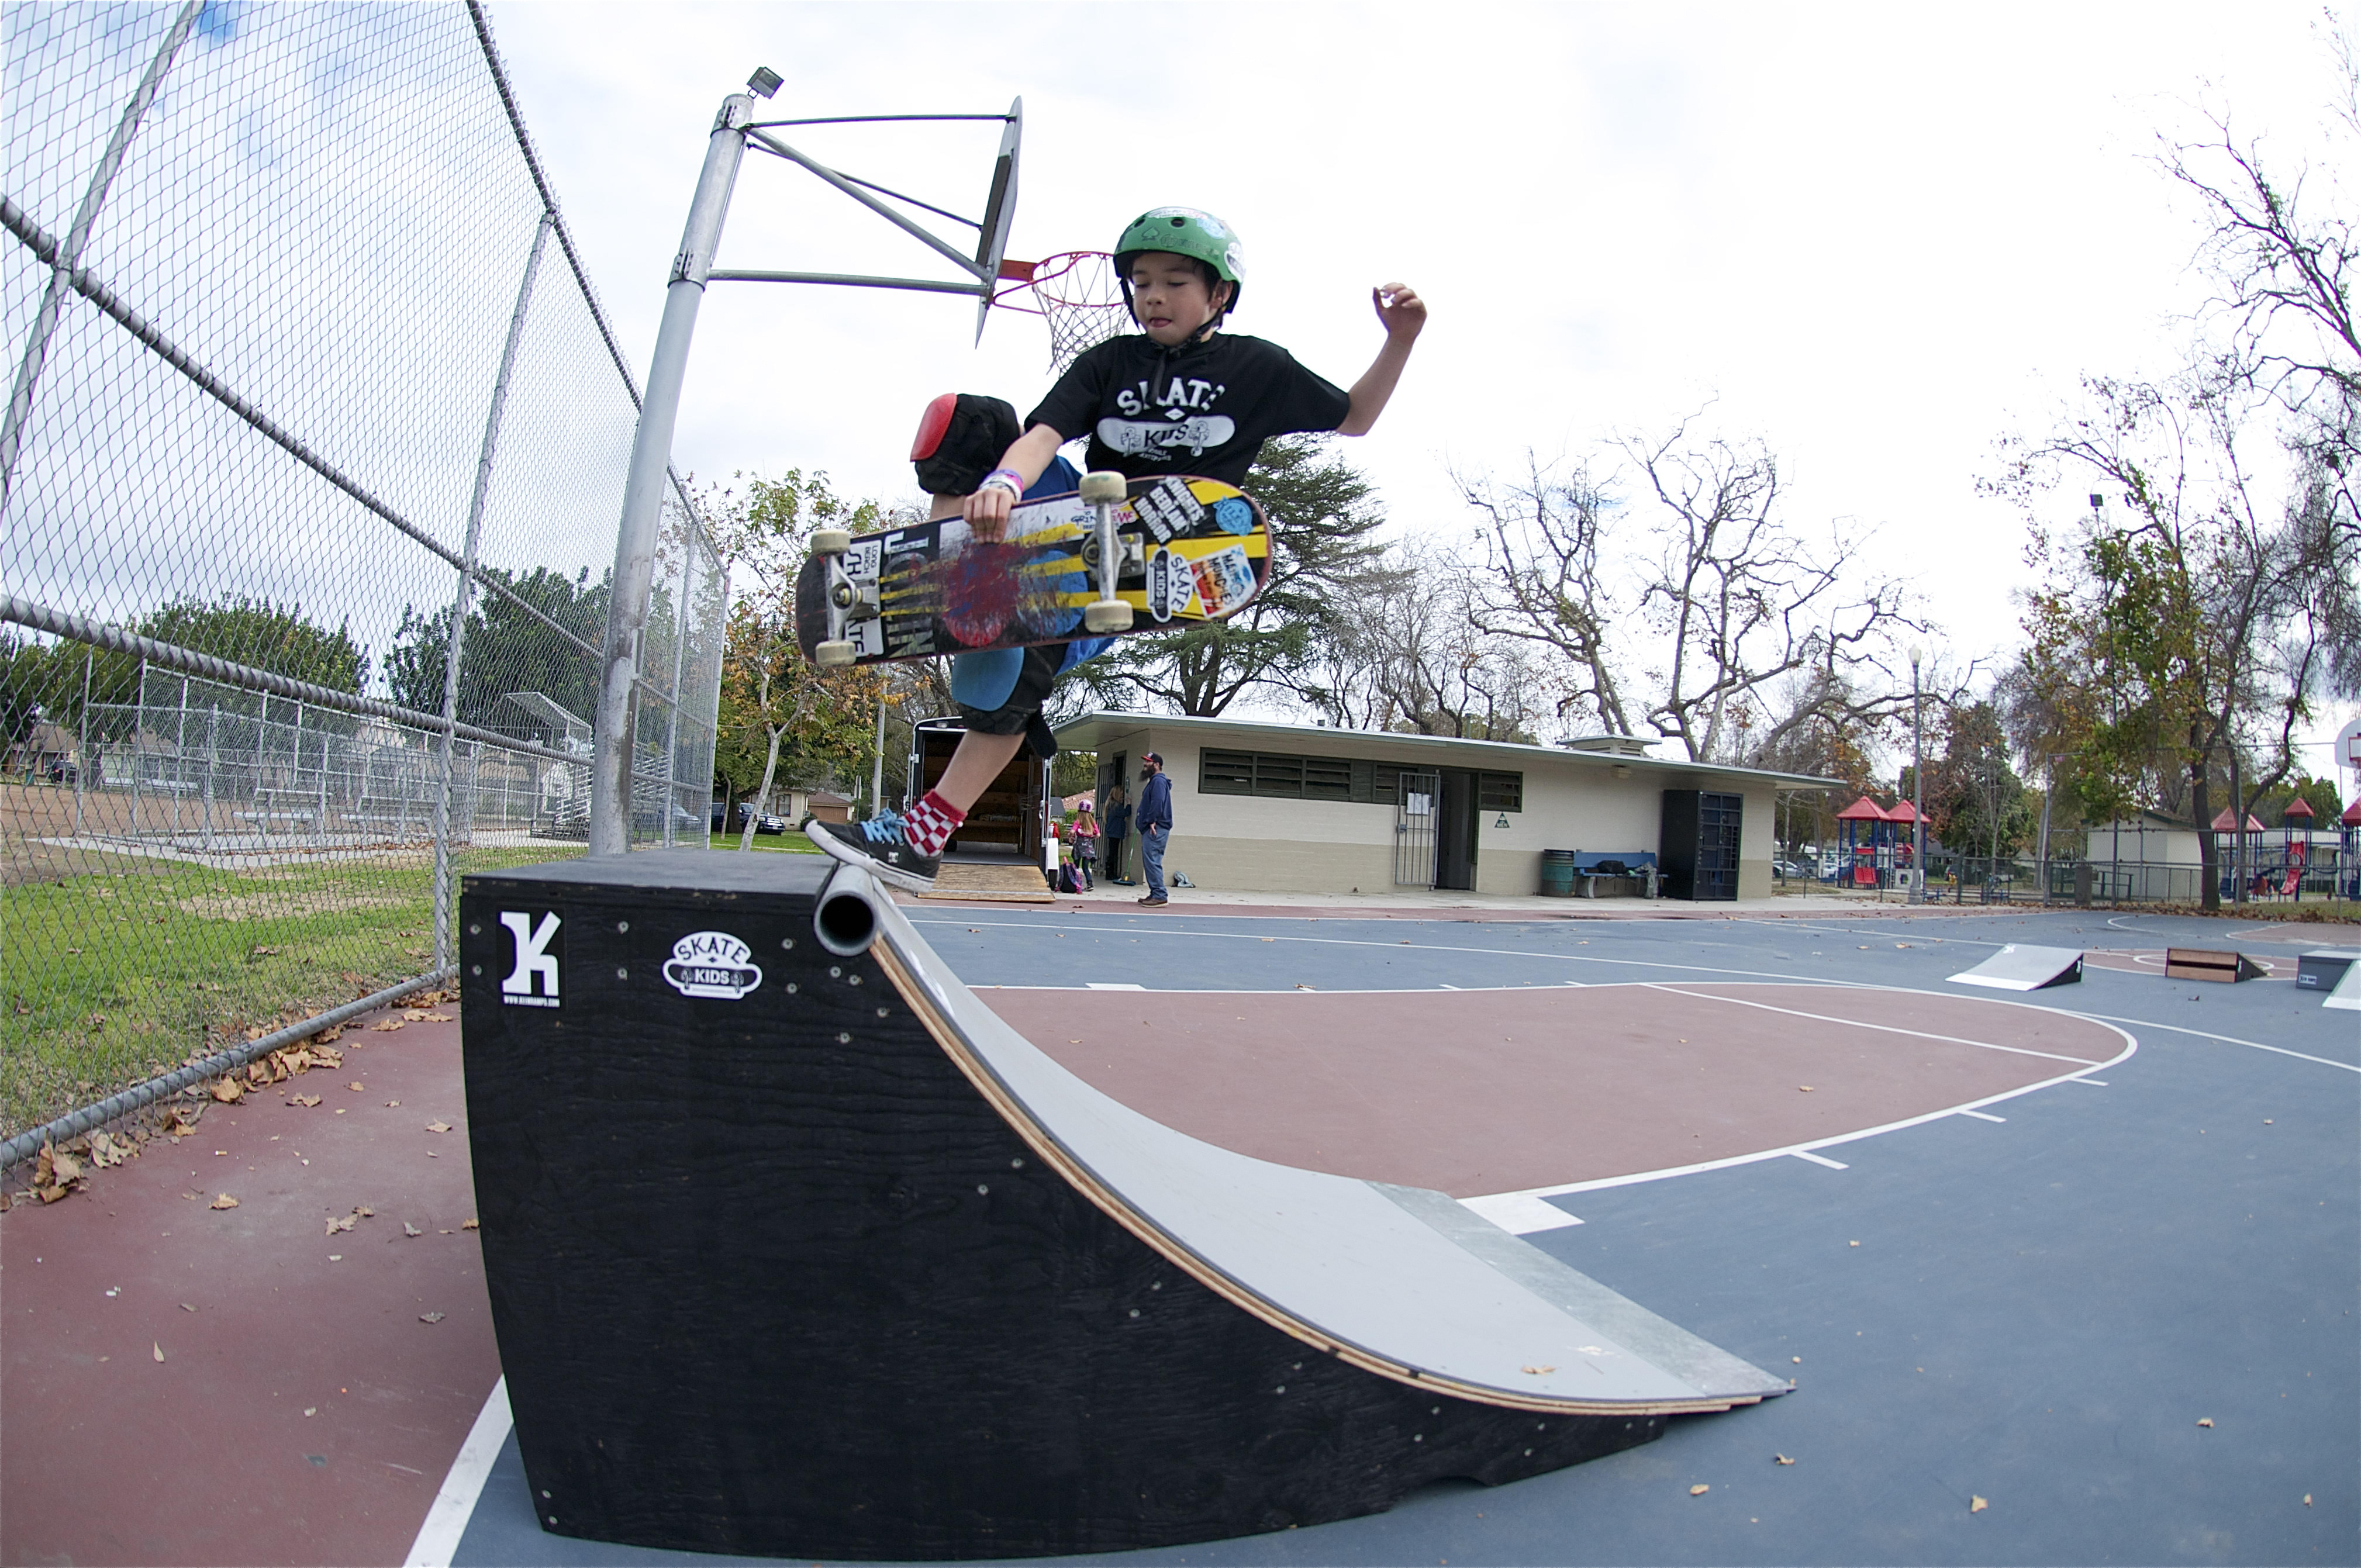 We Are Skate Kids – Youth Skateboarding Lessons from a PRO